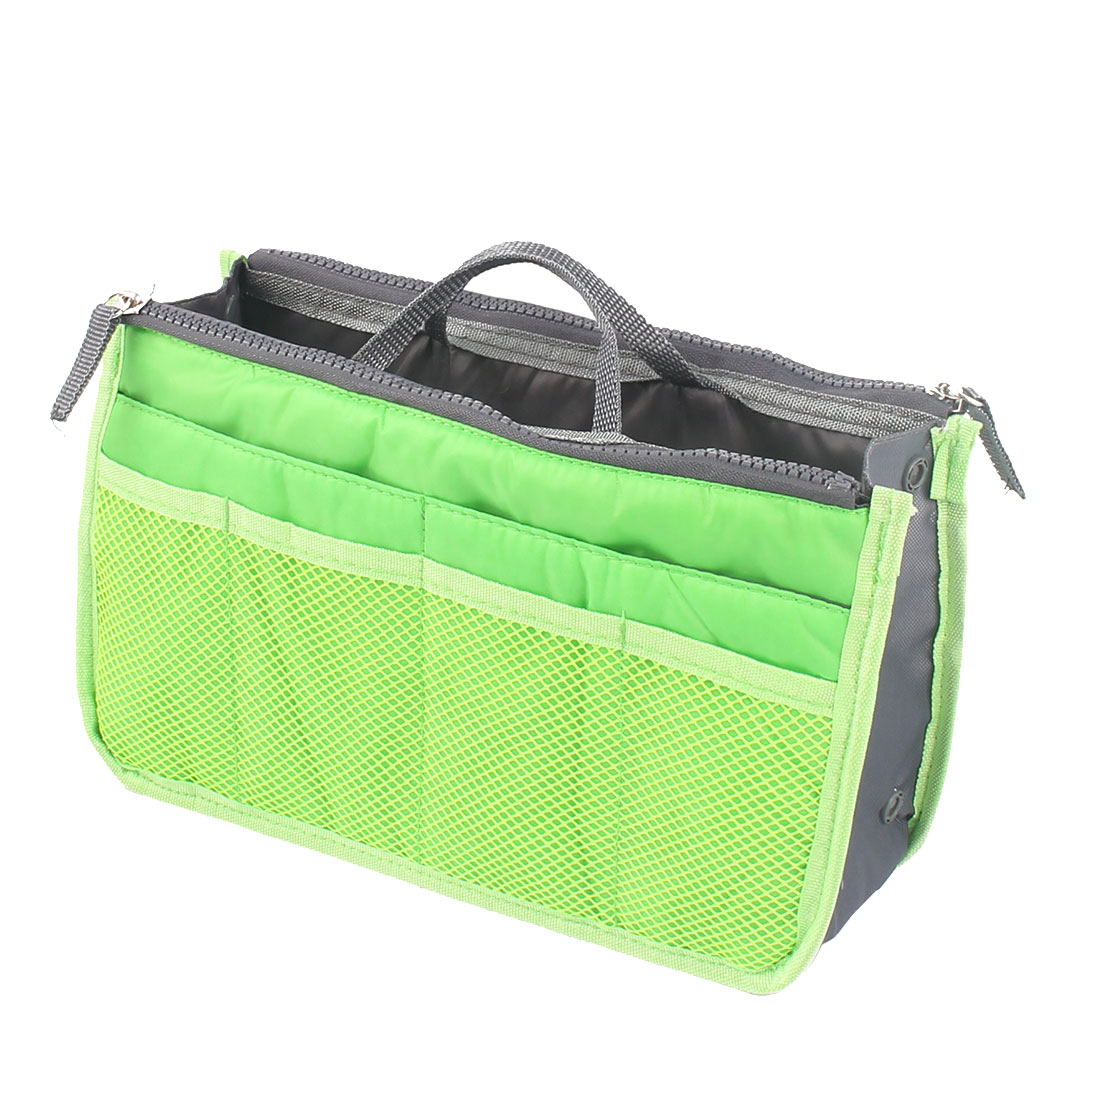 Outdoor Portable Cosmetic Storage Handbag Tote Insert Pouch Green